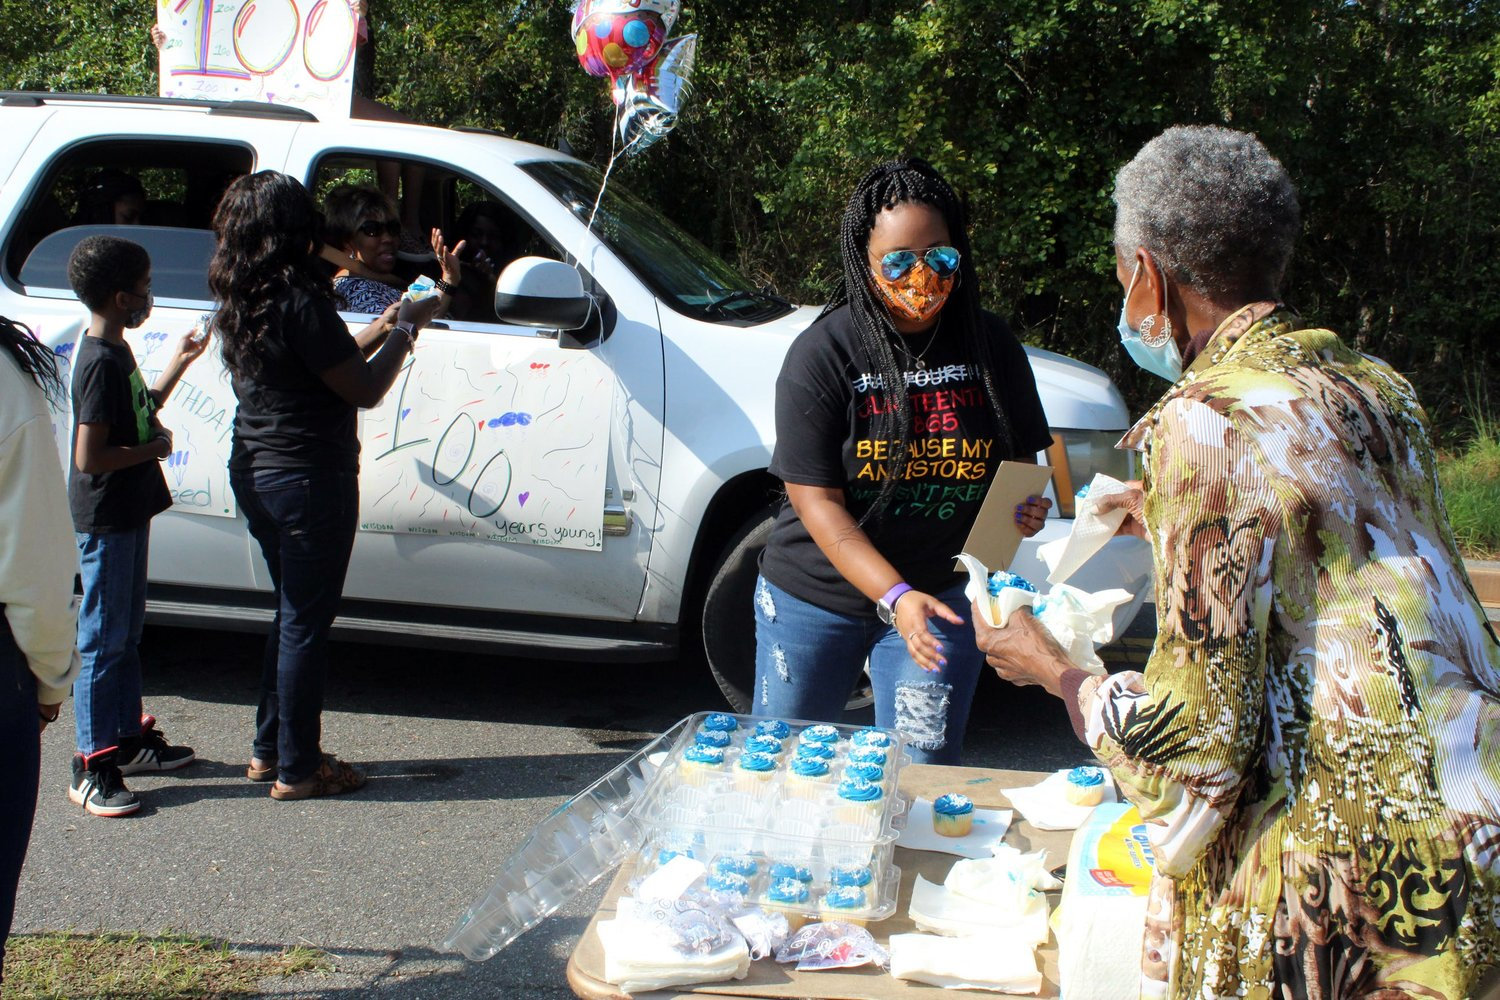 The Speed family handed out cupcakes to the procession of vehicles.